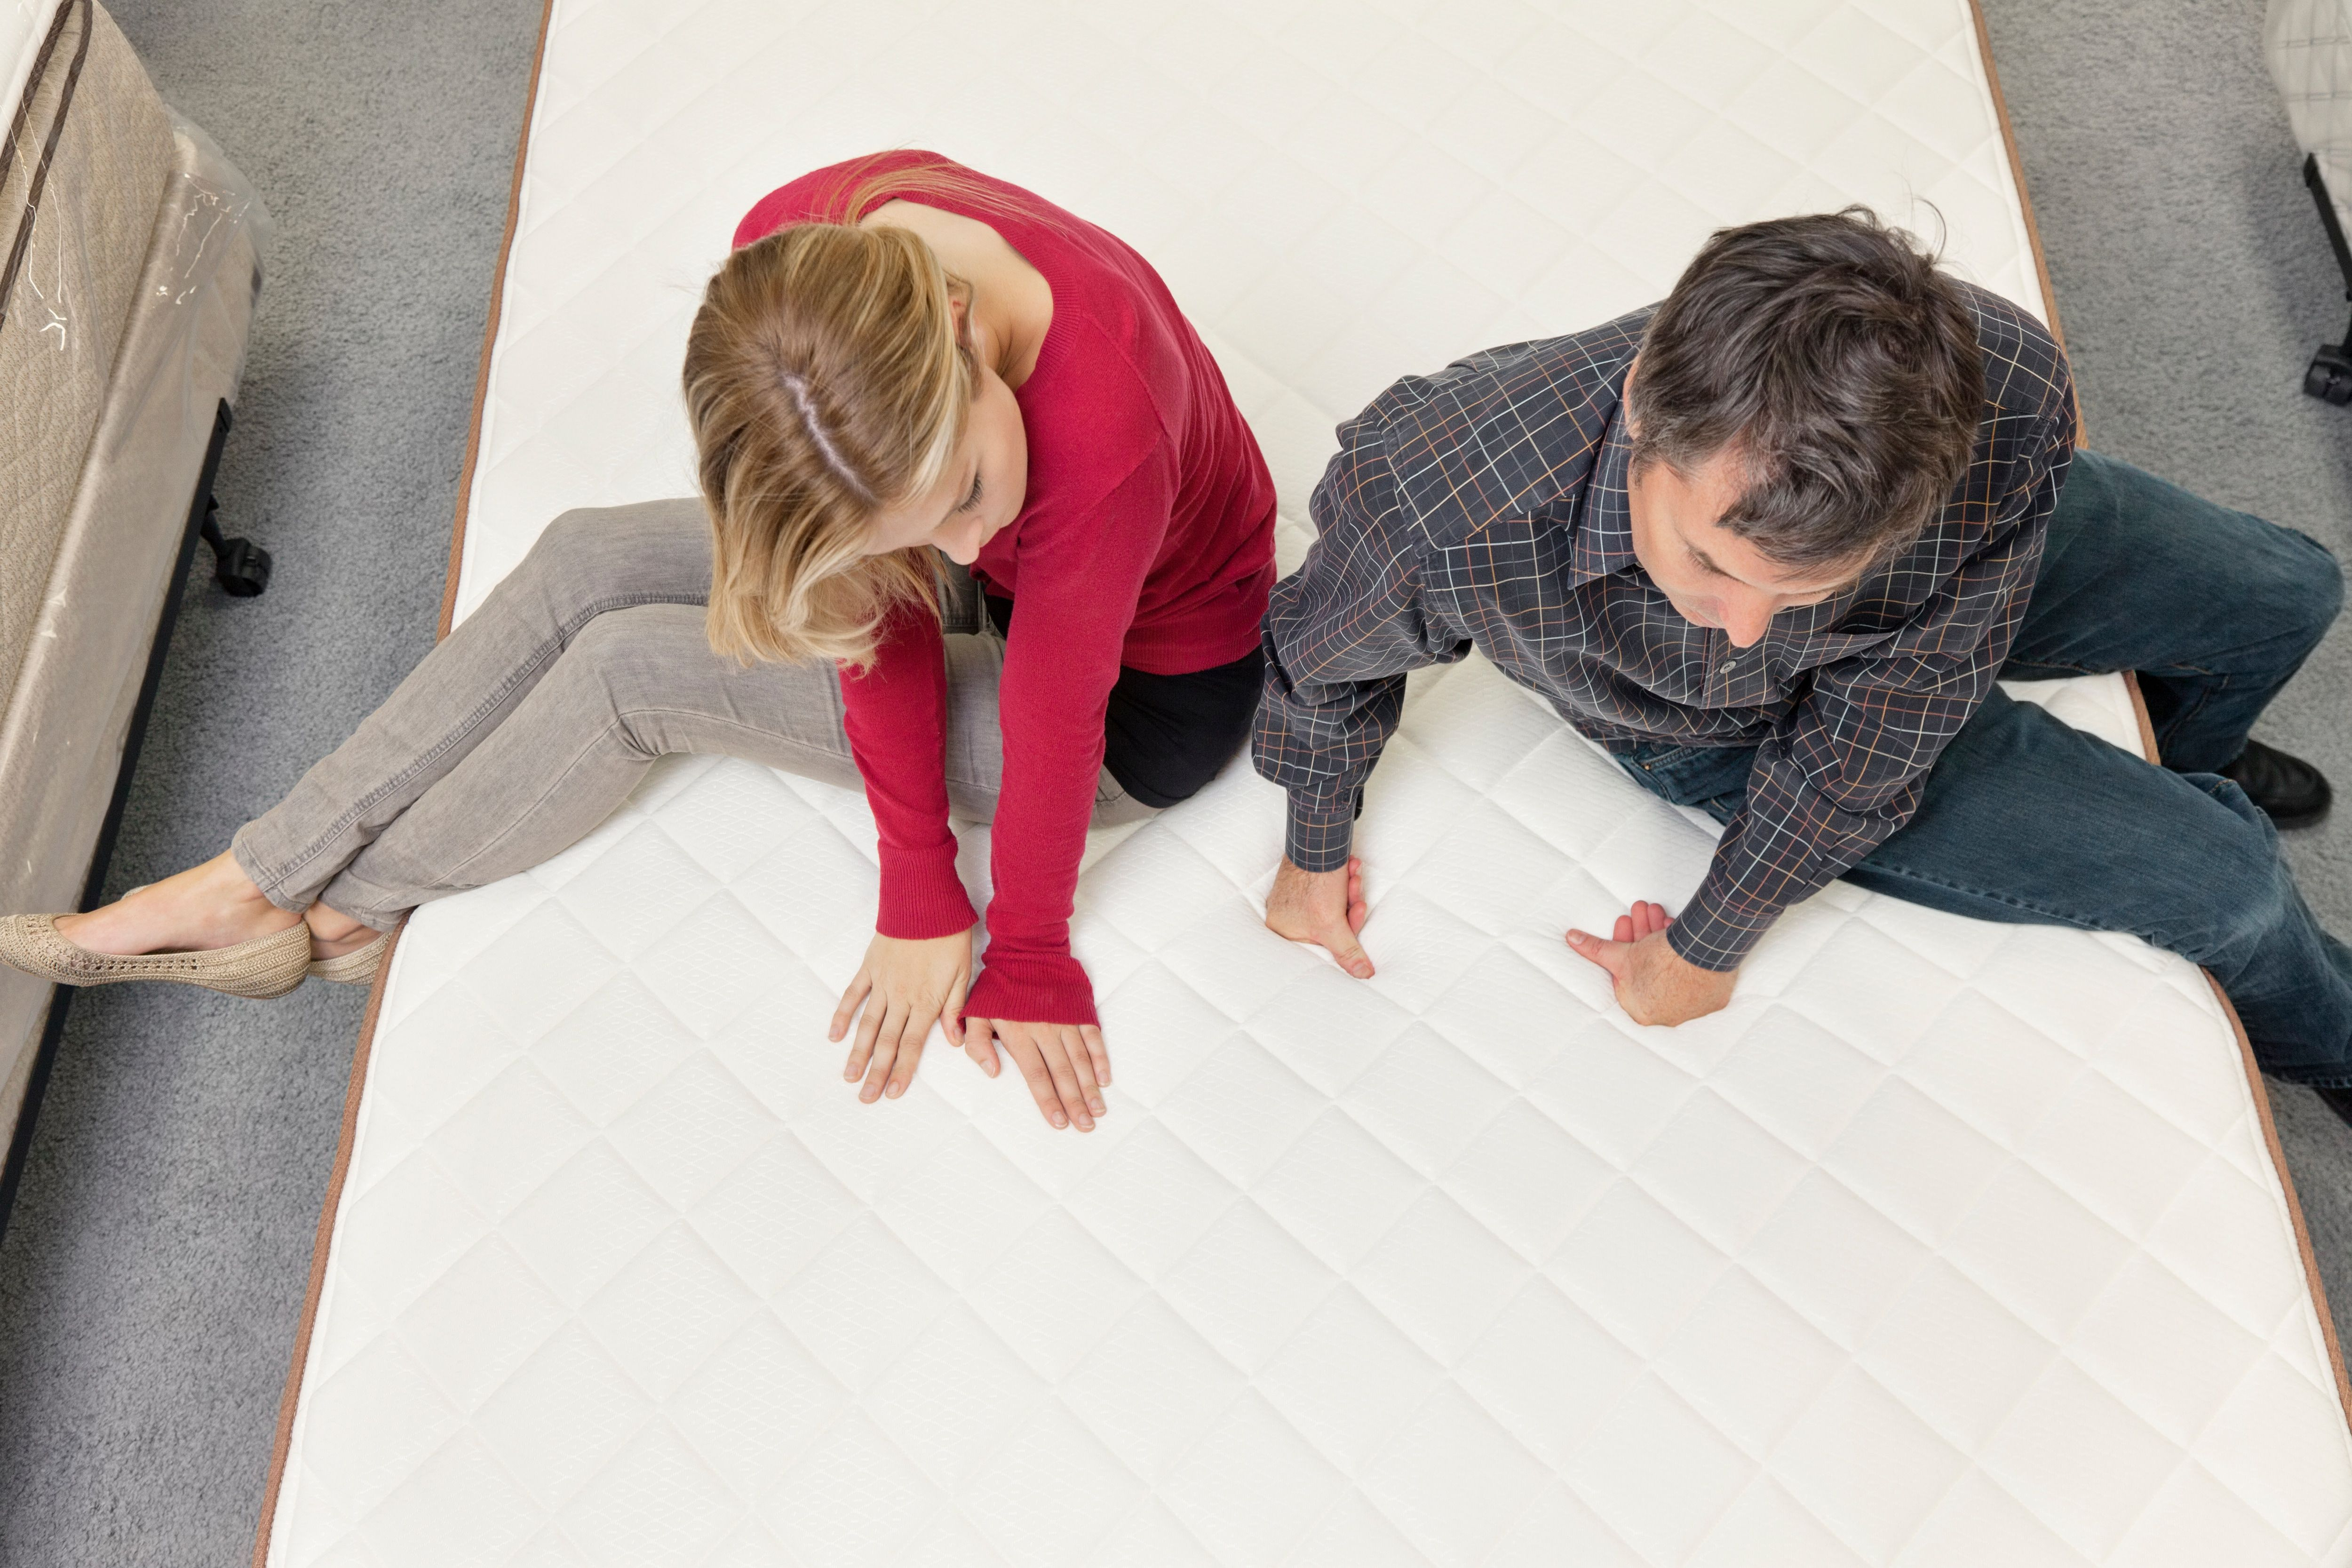 A mattress is a big investment. Follow these steps to find